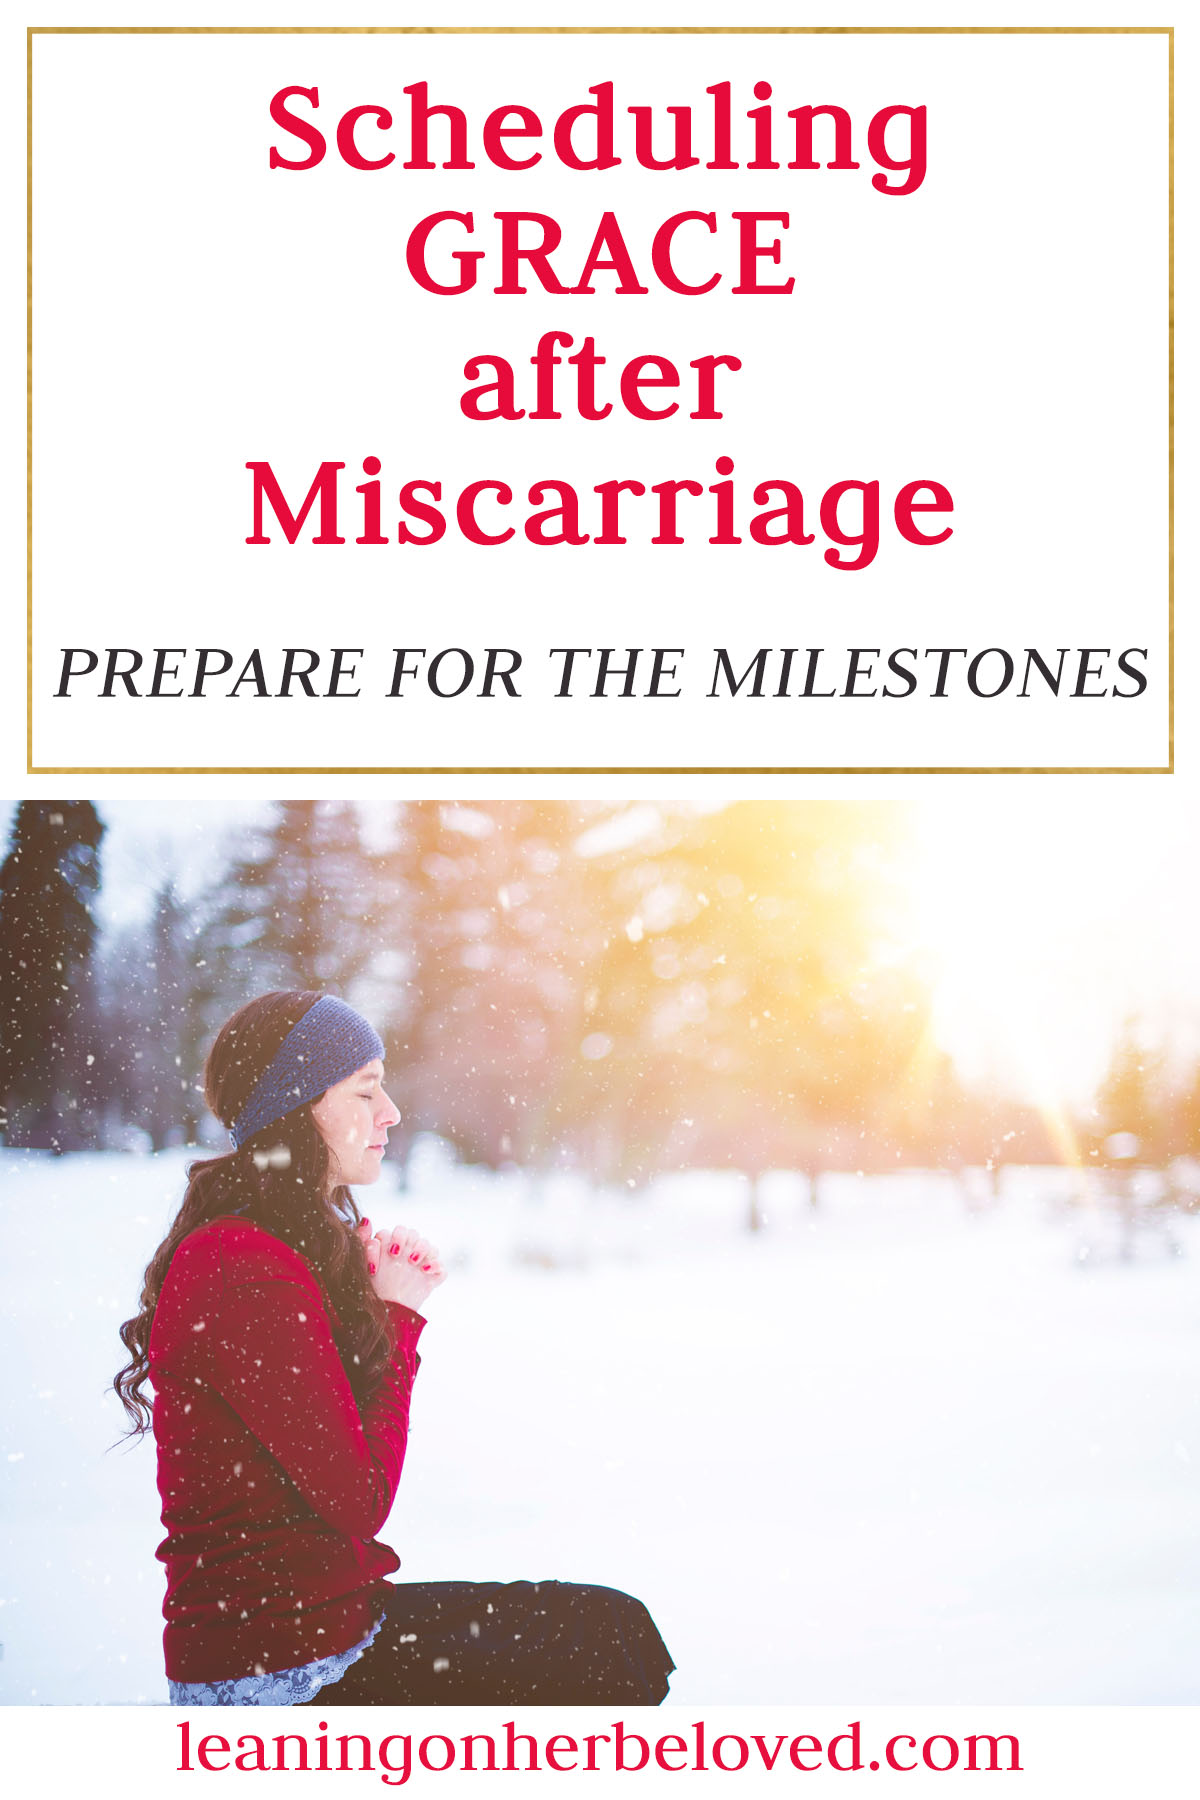 Scheduling Calendar Reminders with inspirational scriptures, links to letters and other options for being prepared when the milestone dates come after a loss | Miscarriage | Grief | #miscarriage #grief #dealingwithgrief